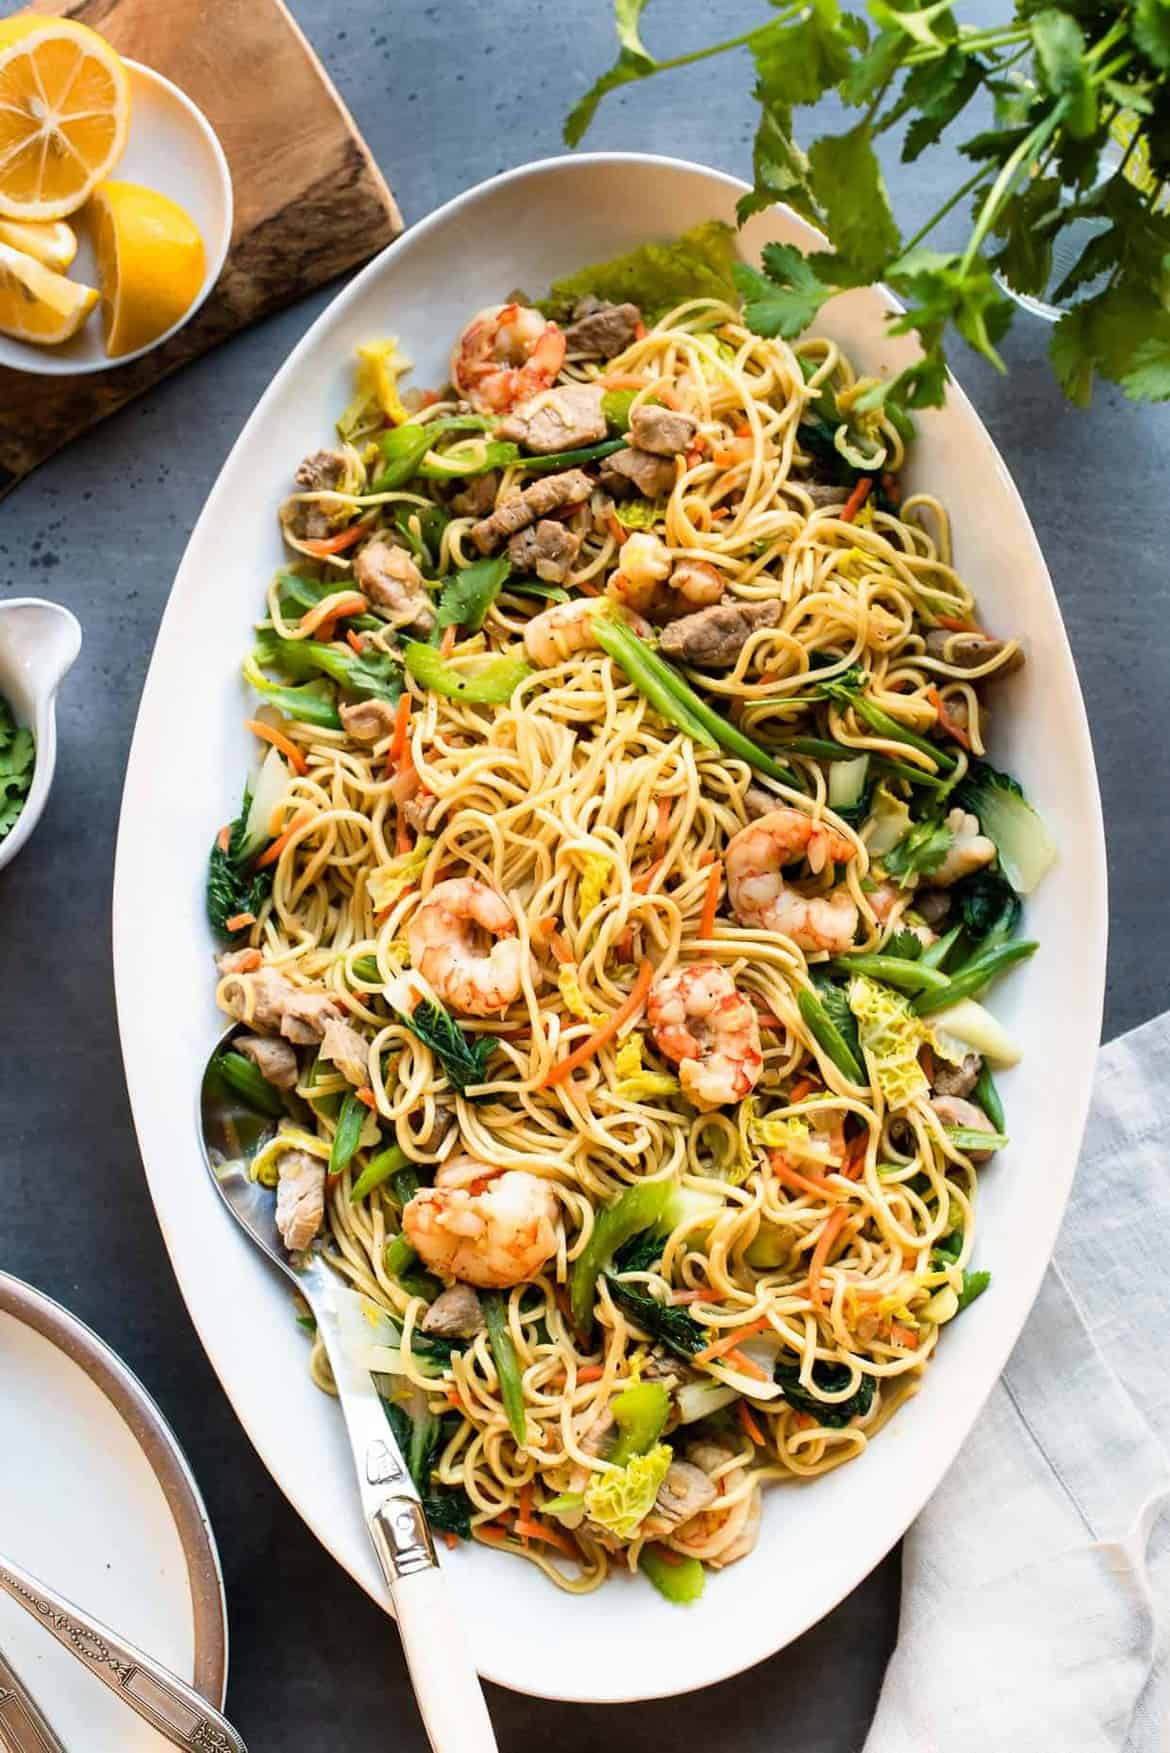 Pancit Canton Filipino Stir Fried Noodles Kitchen Confidante